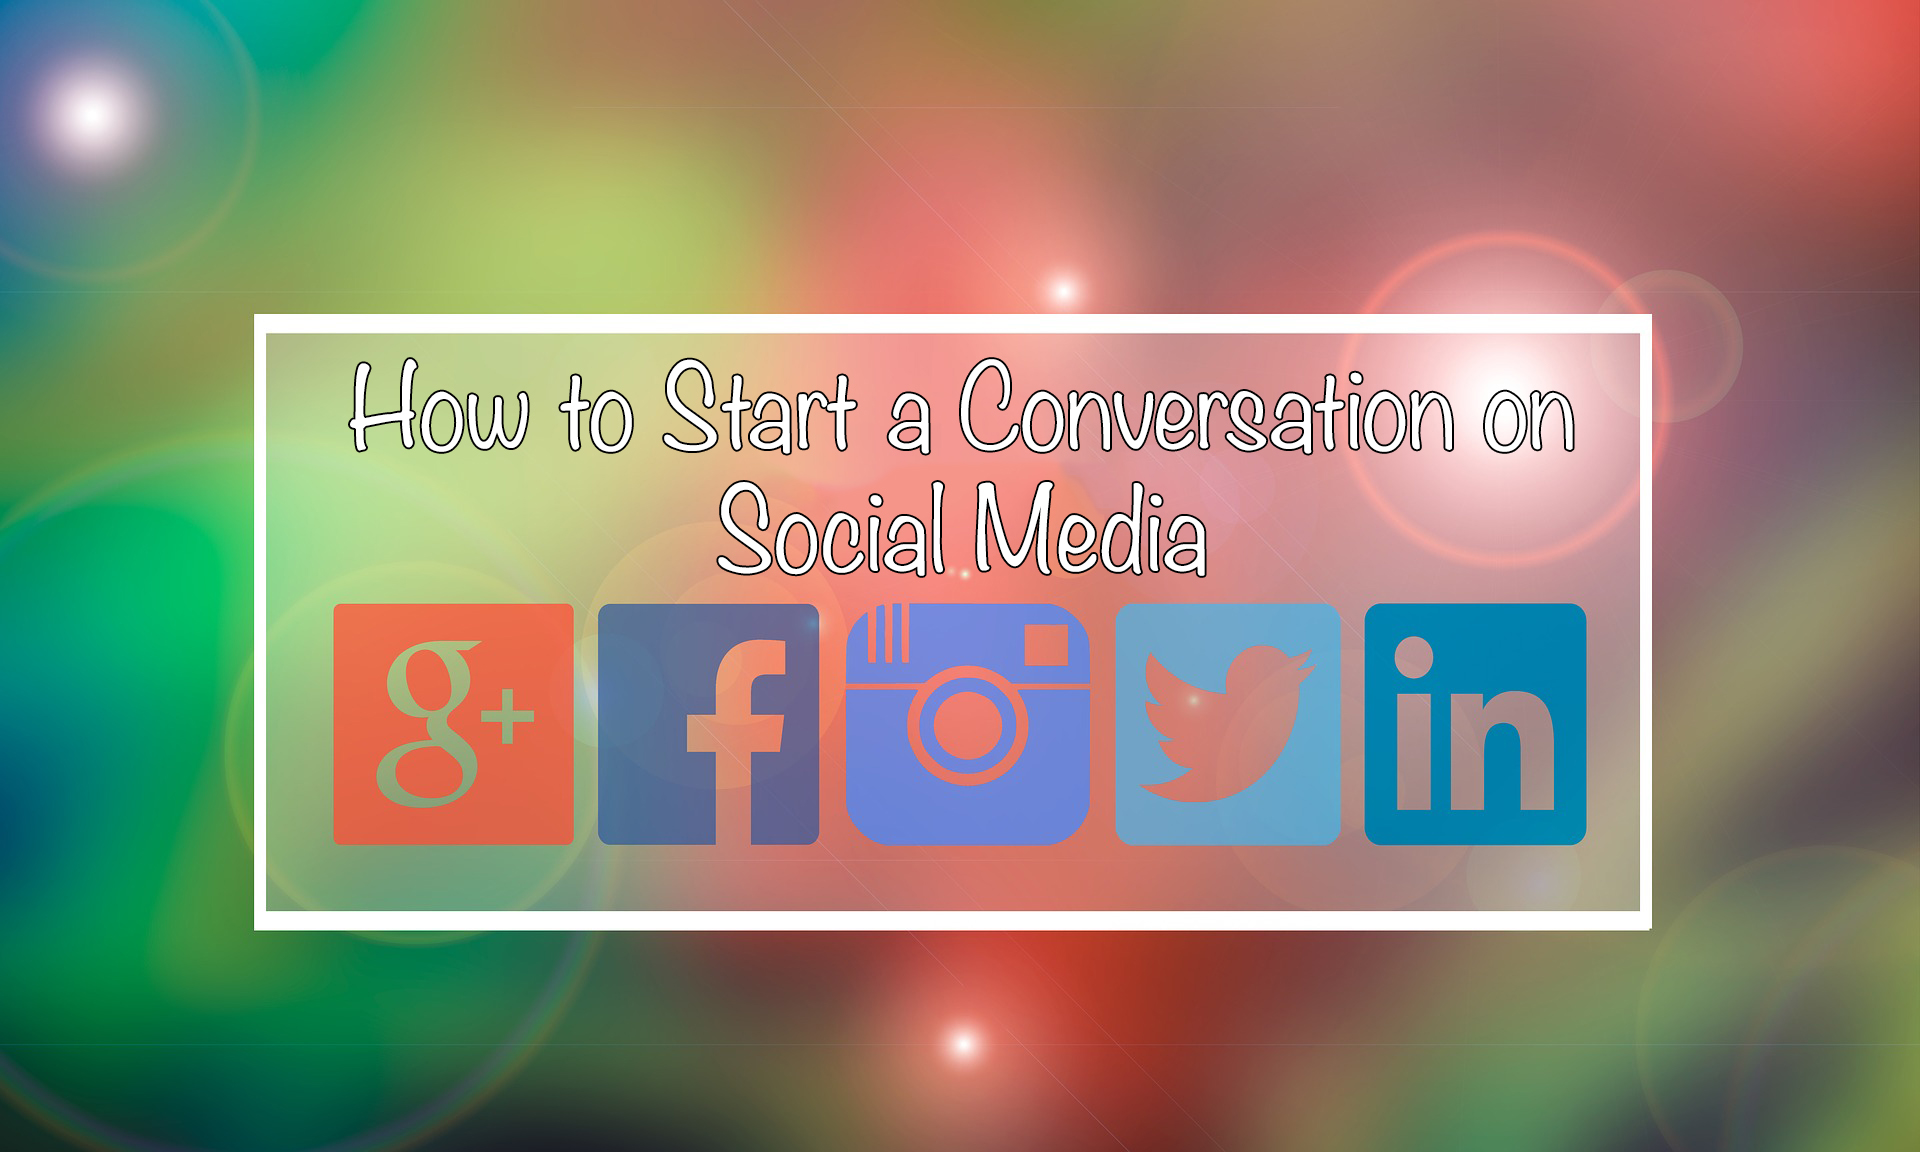 How to Start a Conversation on Social Media